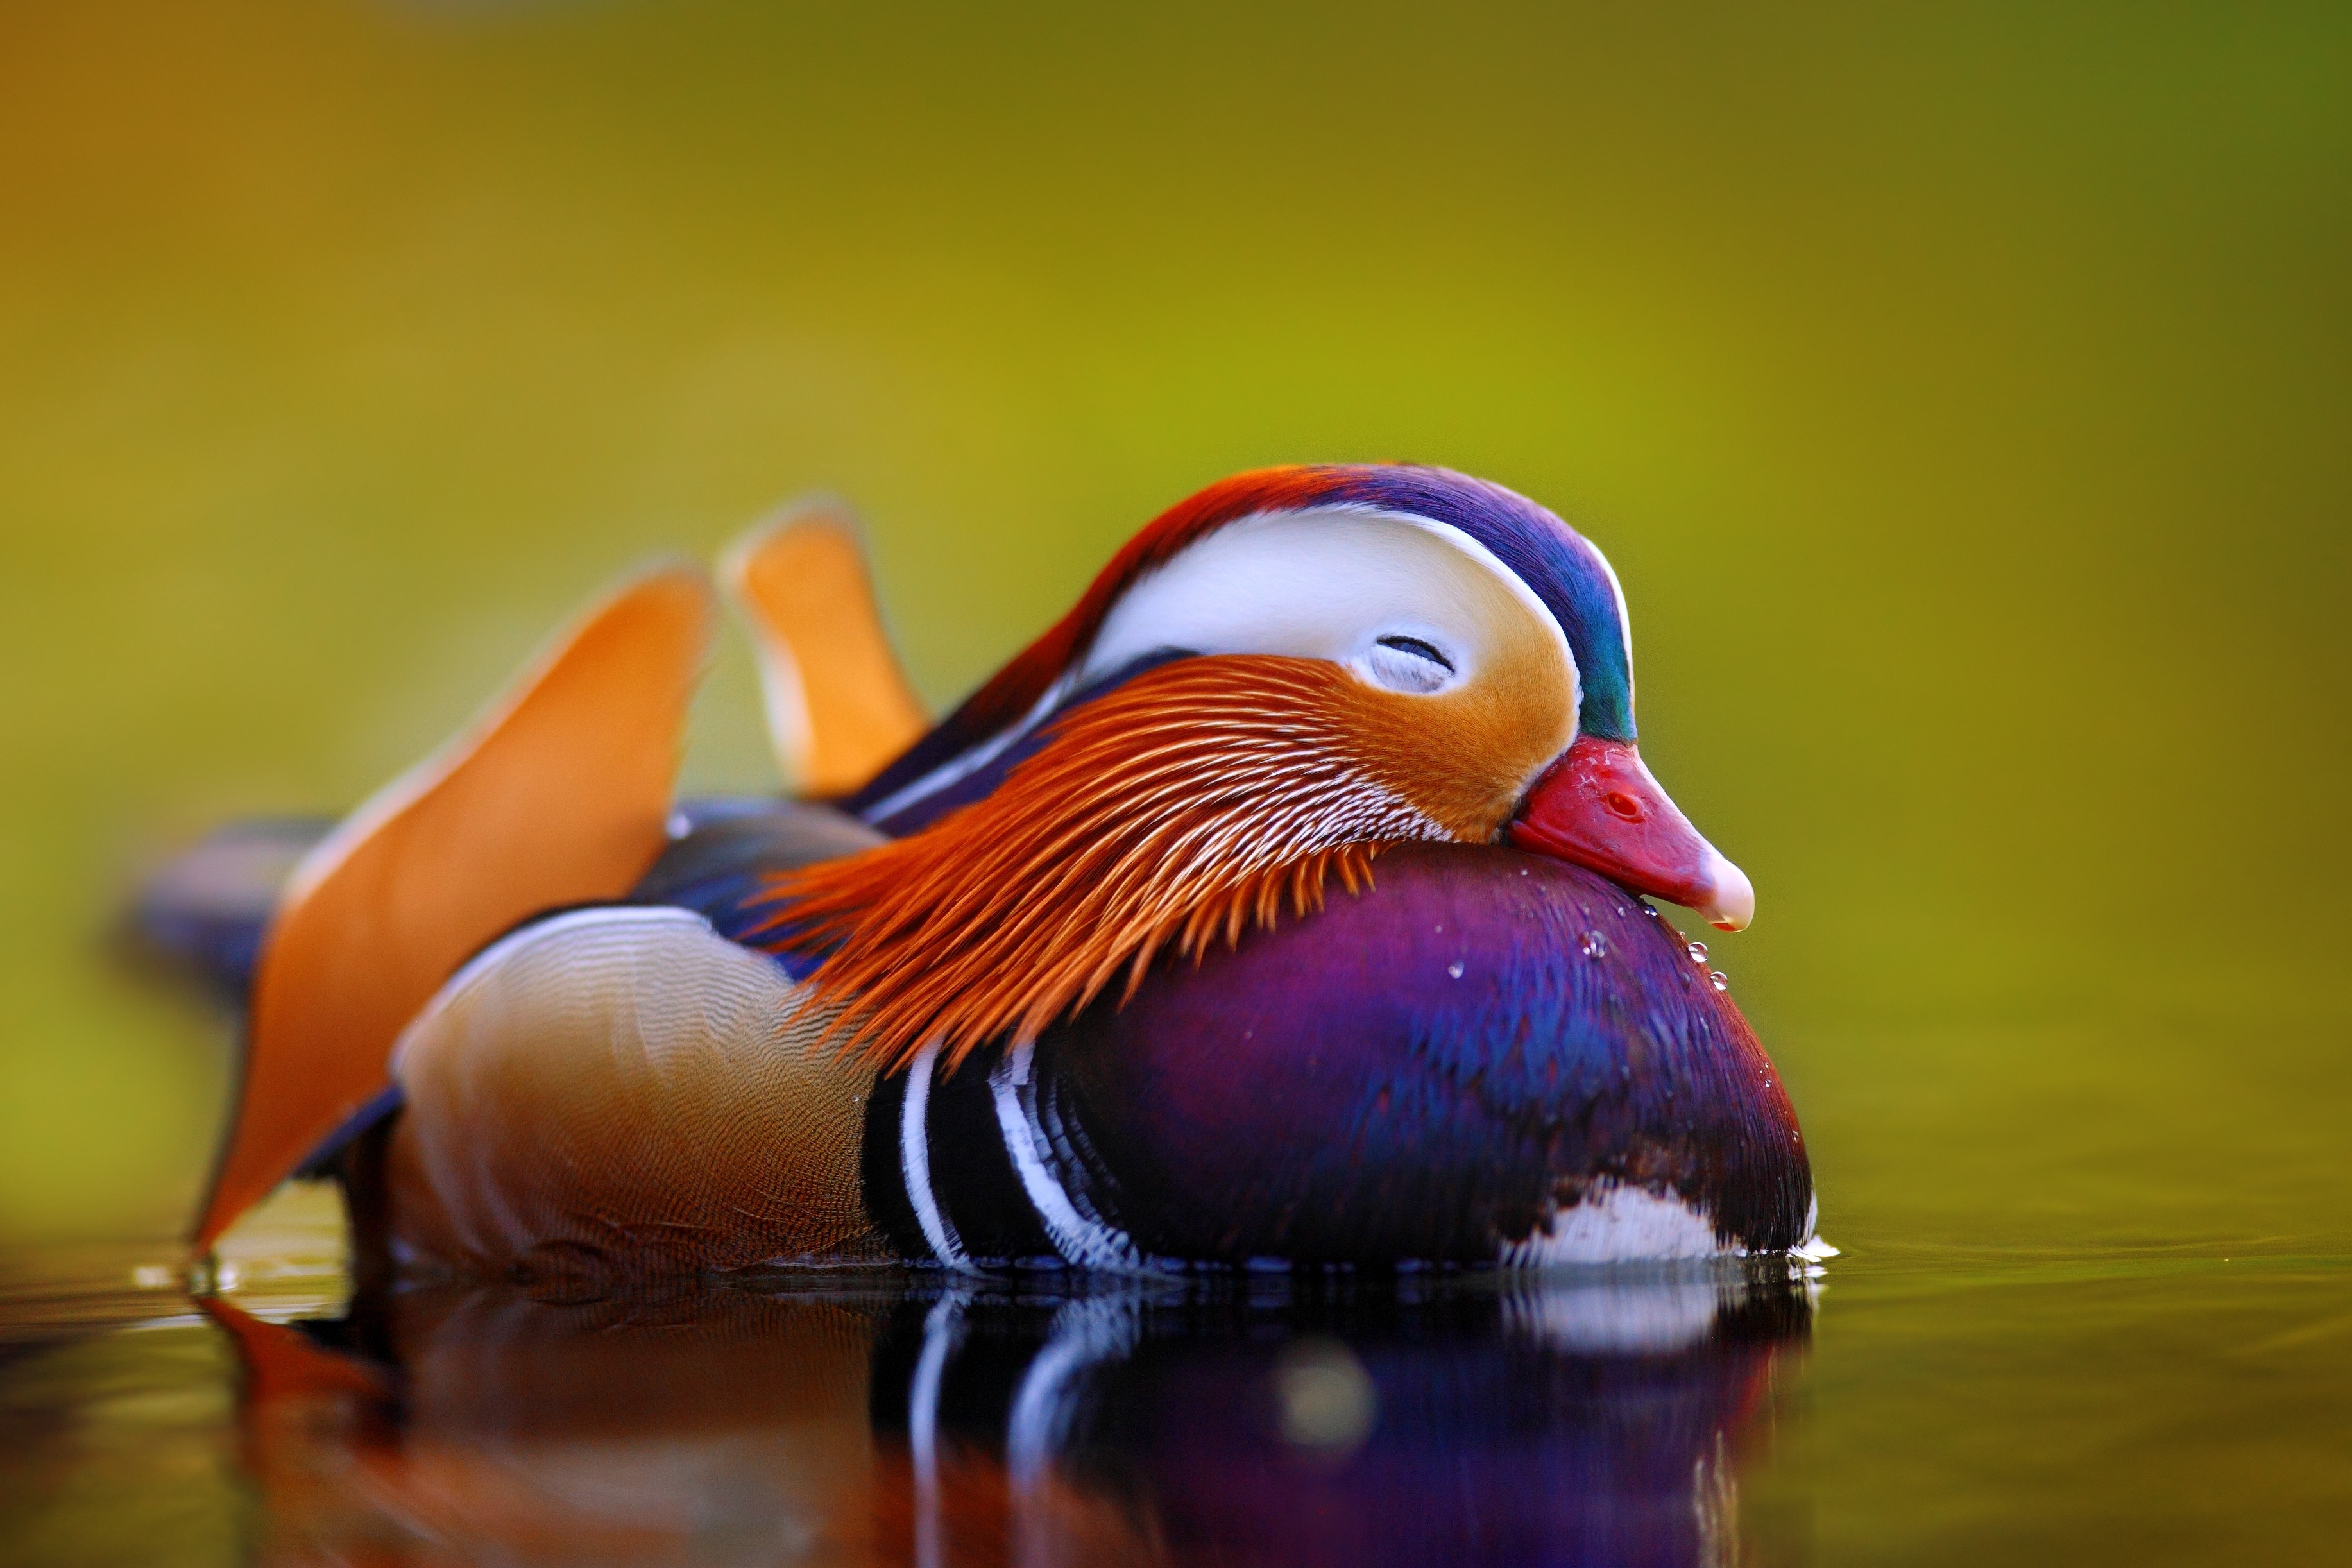 a very brightly colored duck in hues of orange, purple, and blue—that almost resembles a toy or a painted statue